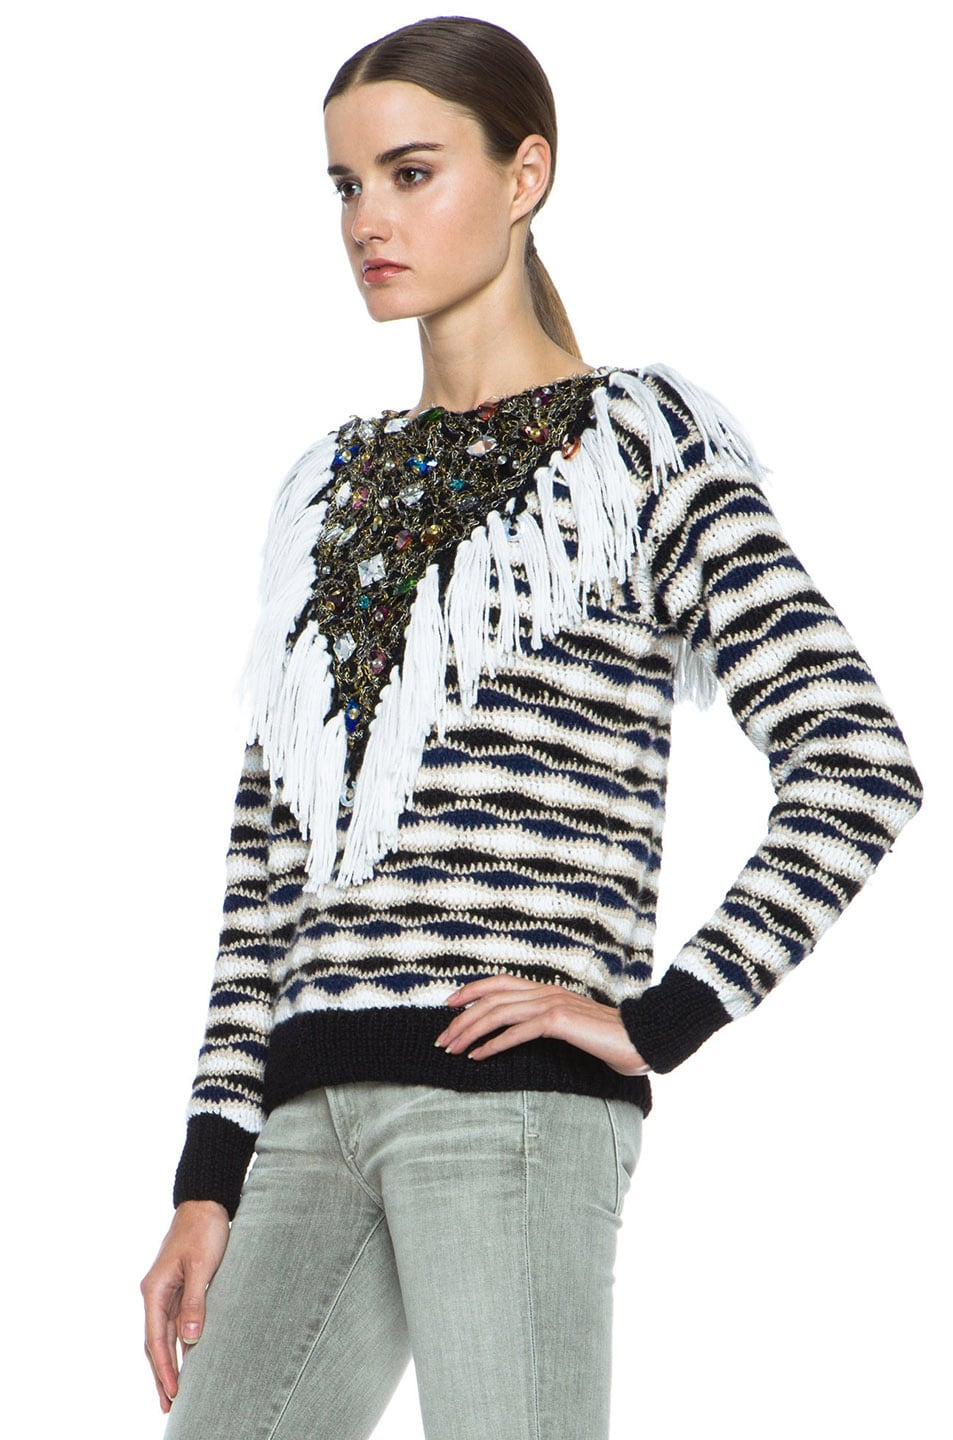 Image 2 of Rodarte Hand Crochet & Knit Sweater with Jeweled Collar in Black & White & Navy